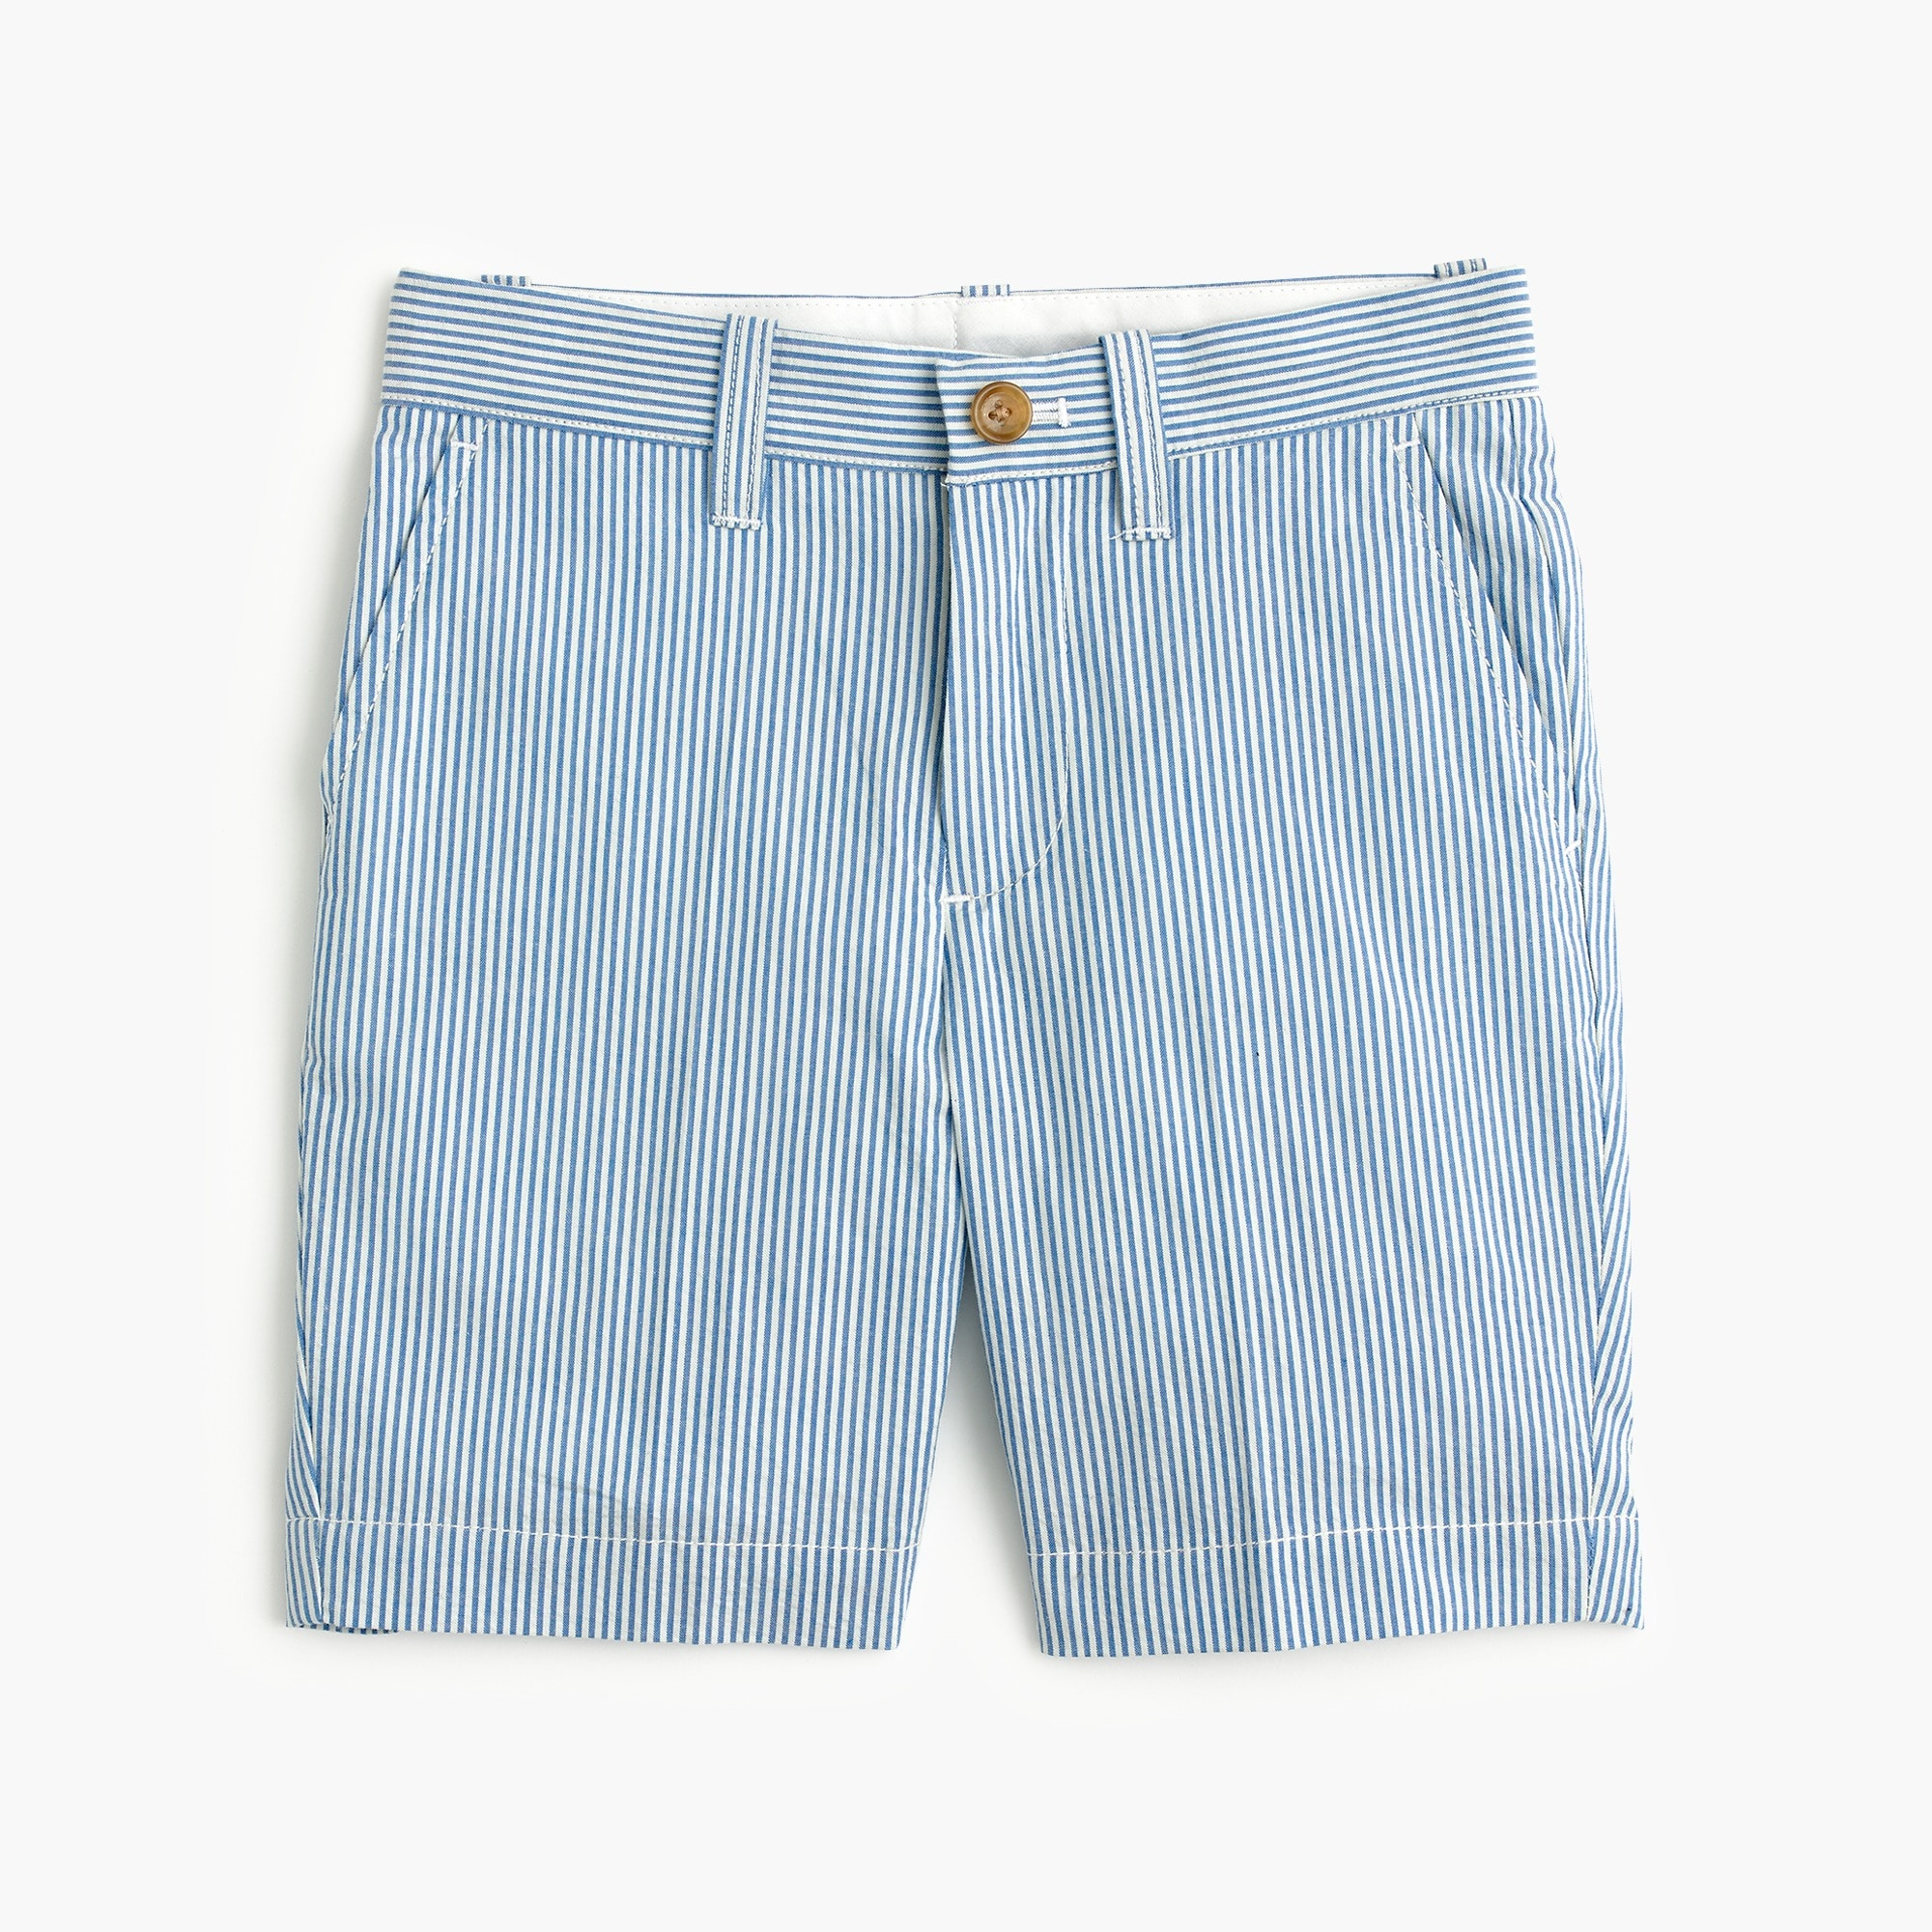 boys Boys' Stanton short in seersucker